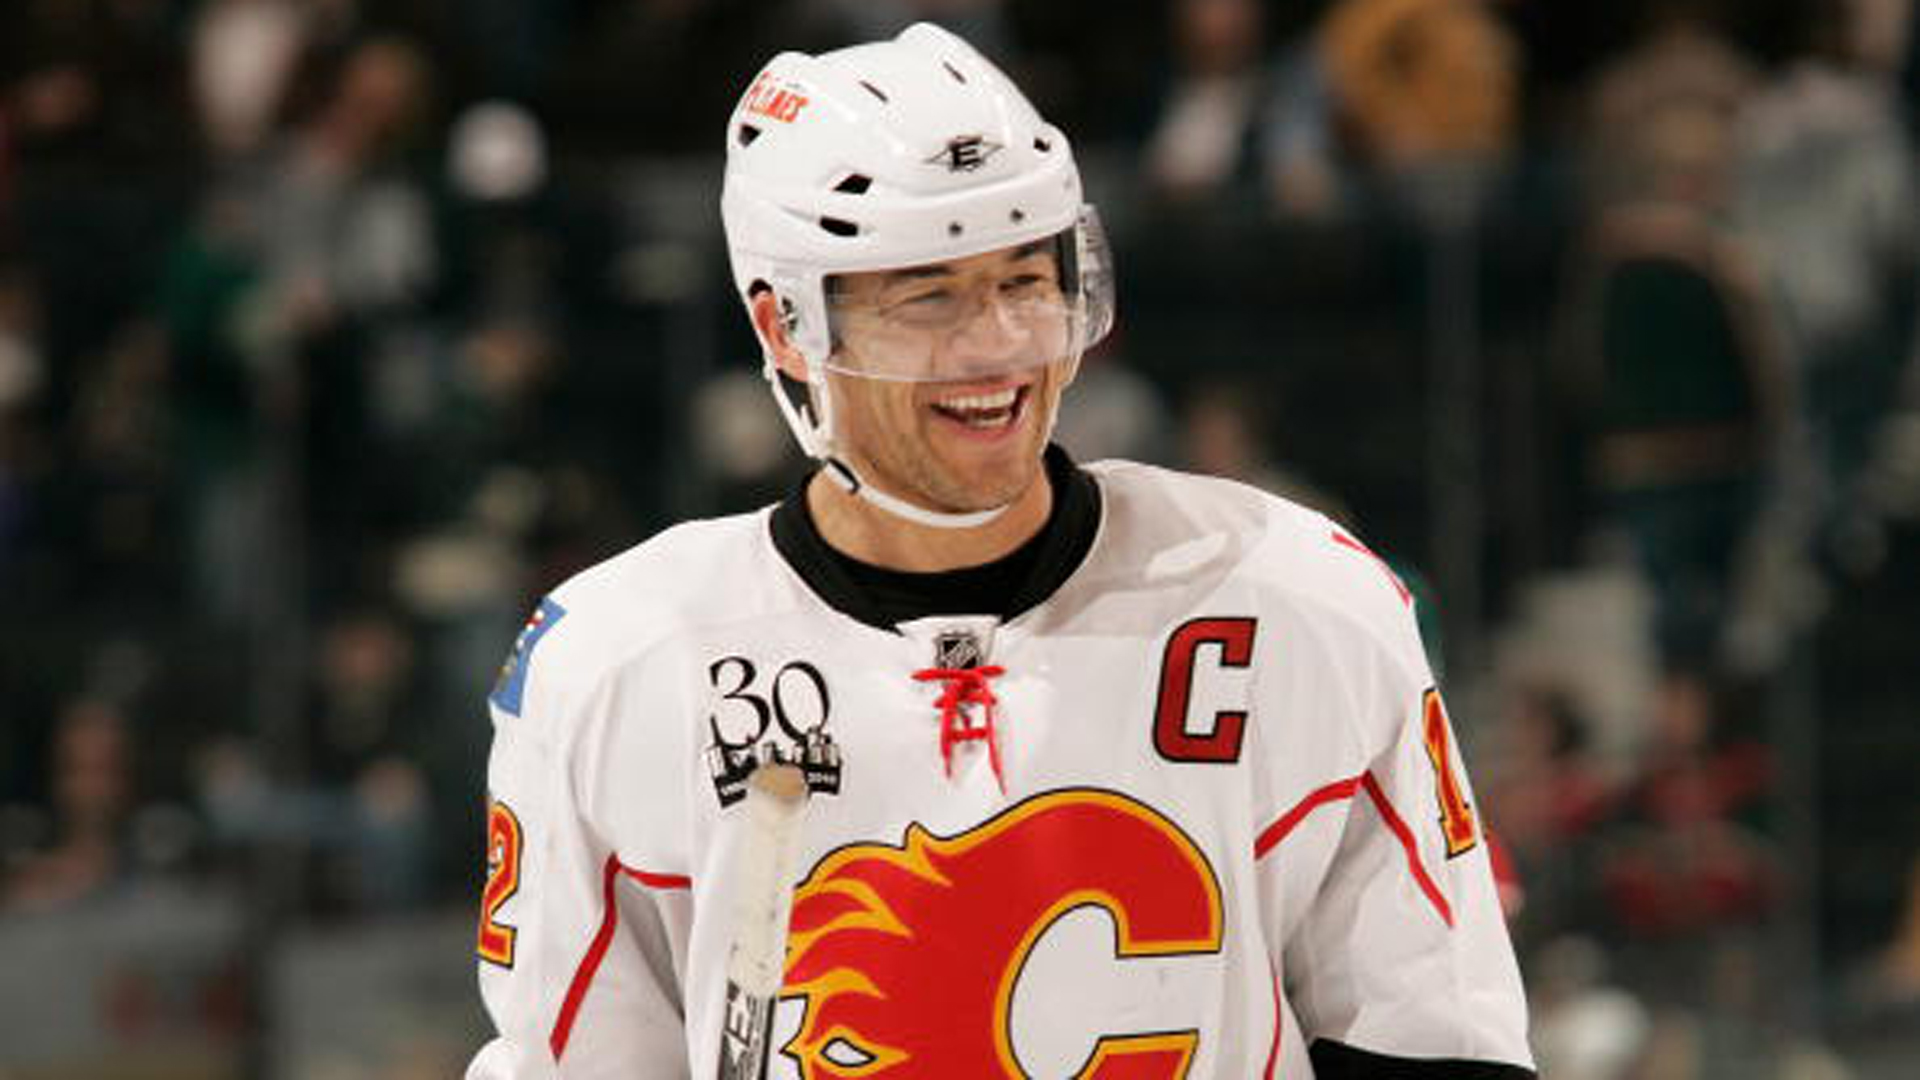 #12 Goes To The Rafters Tonite in Cowtown!!